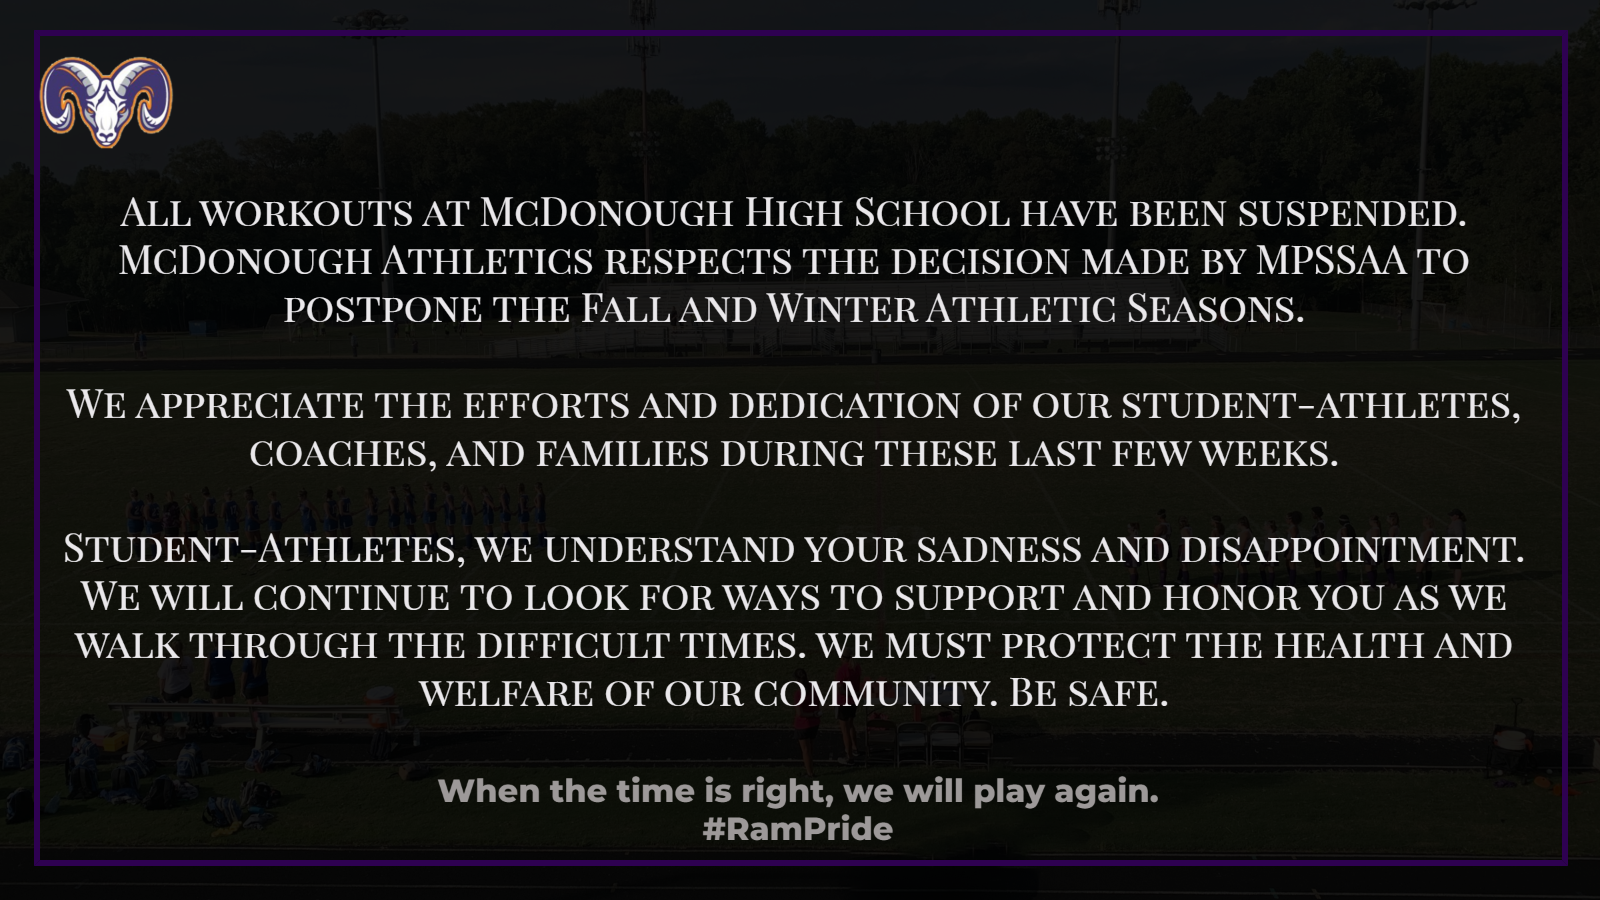 Fall Sports Workouts Suspended